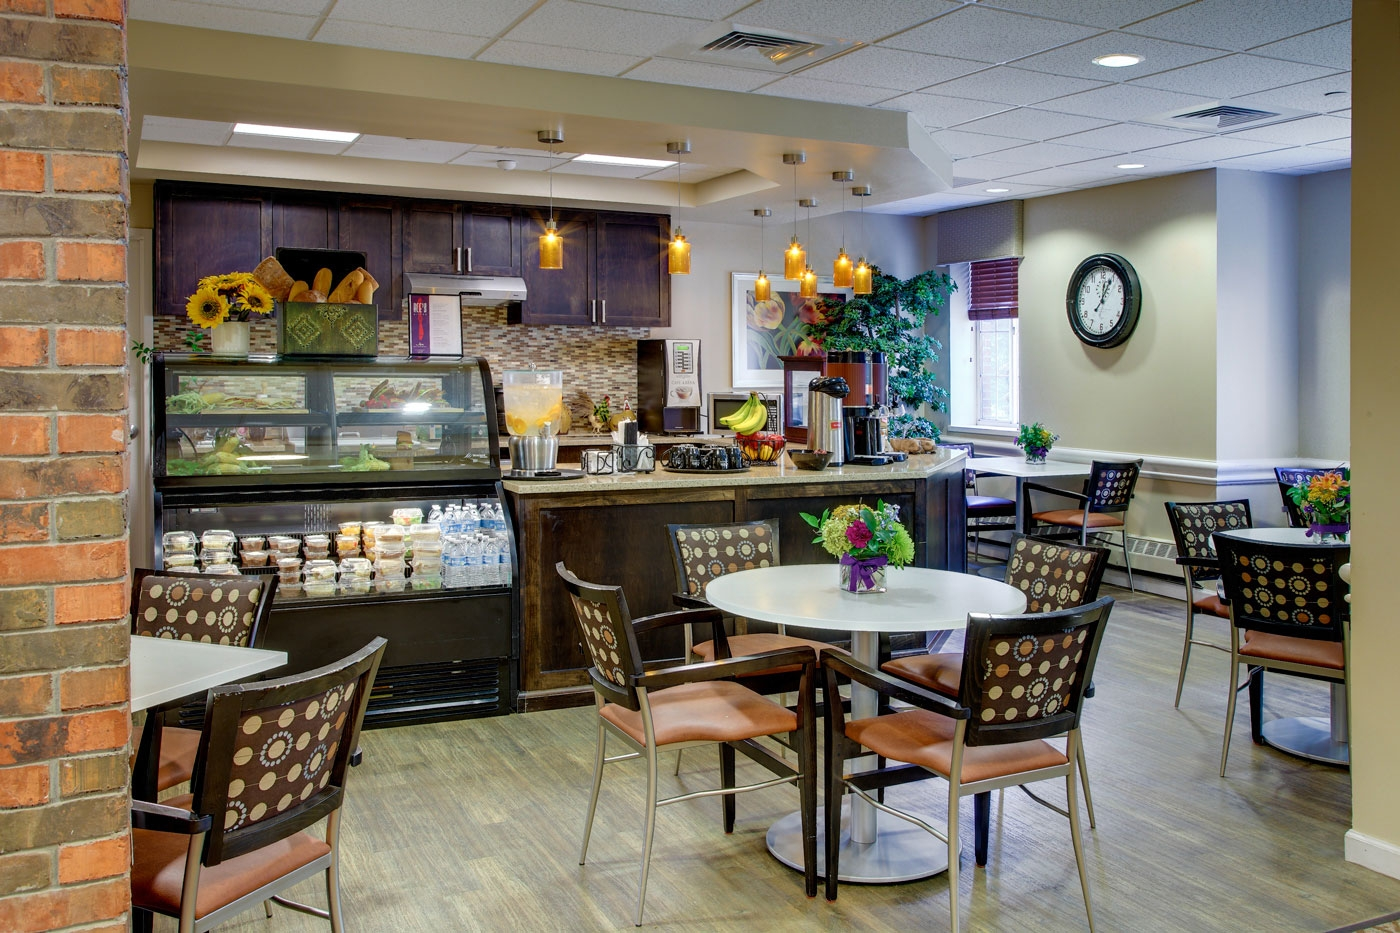 Our lively interior design for a cafe in a NY memory care community